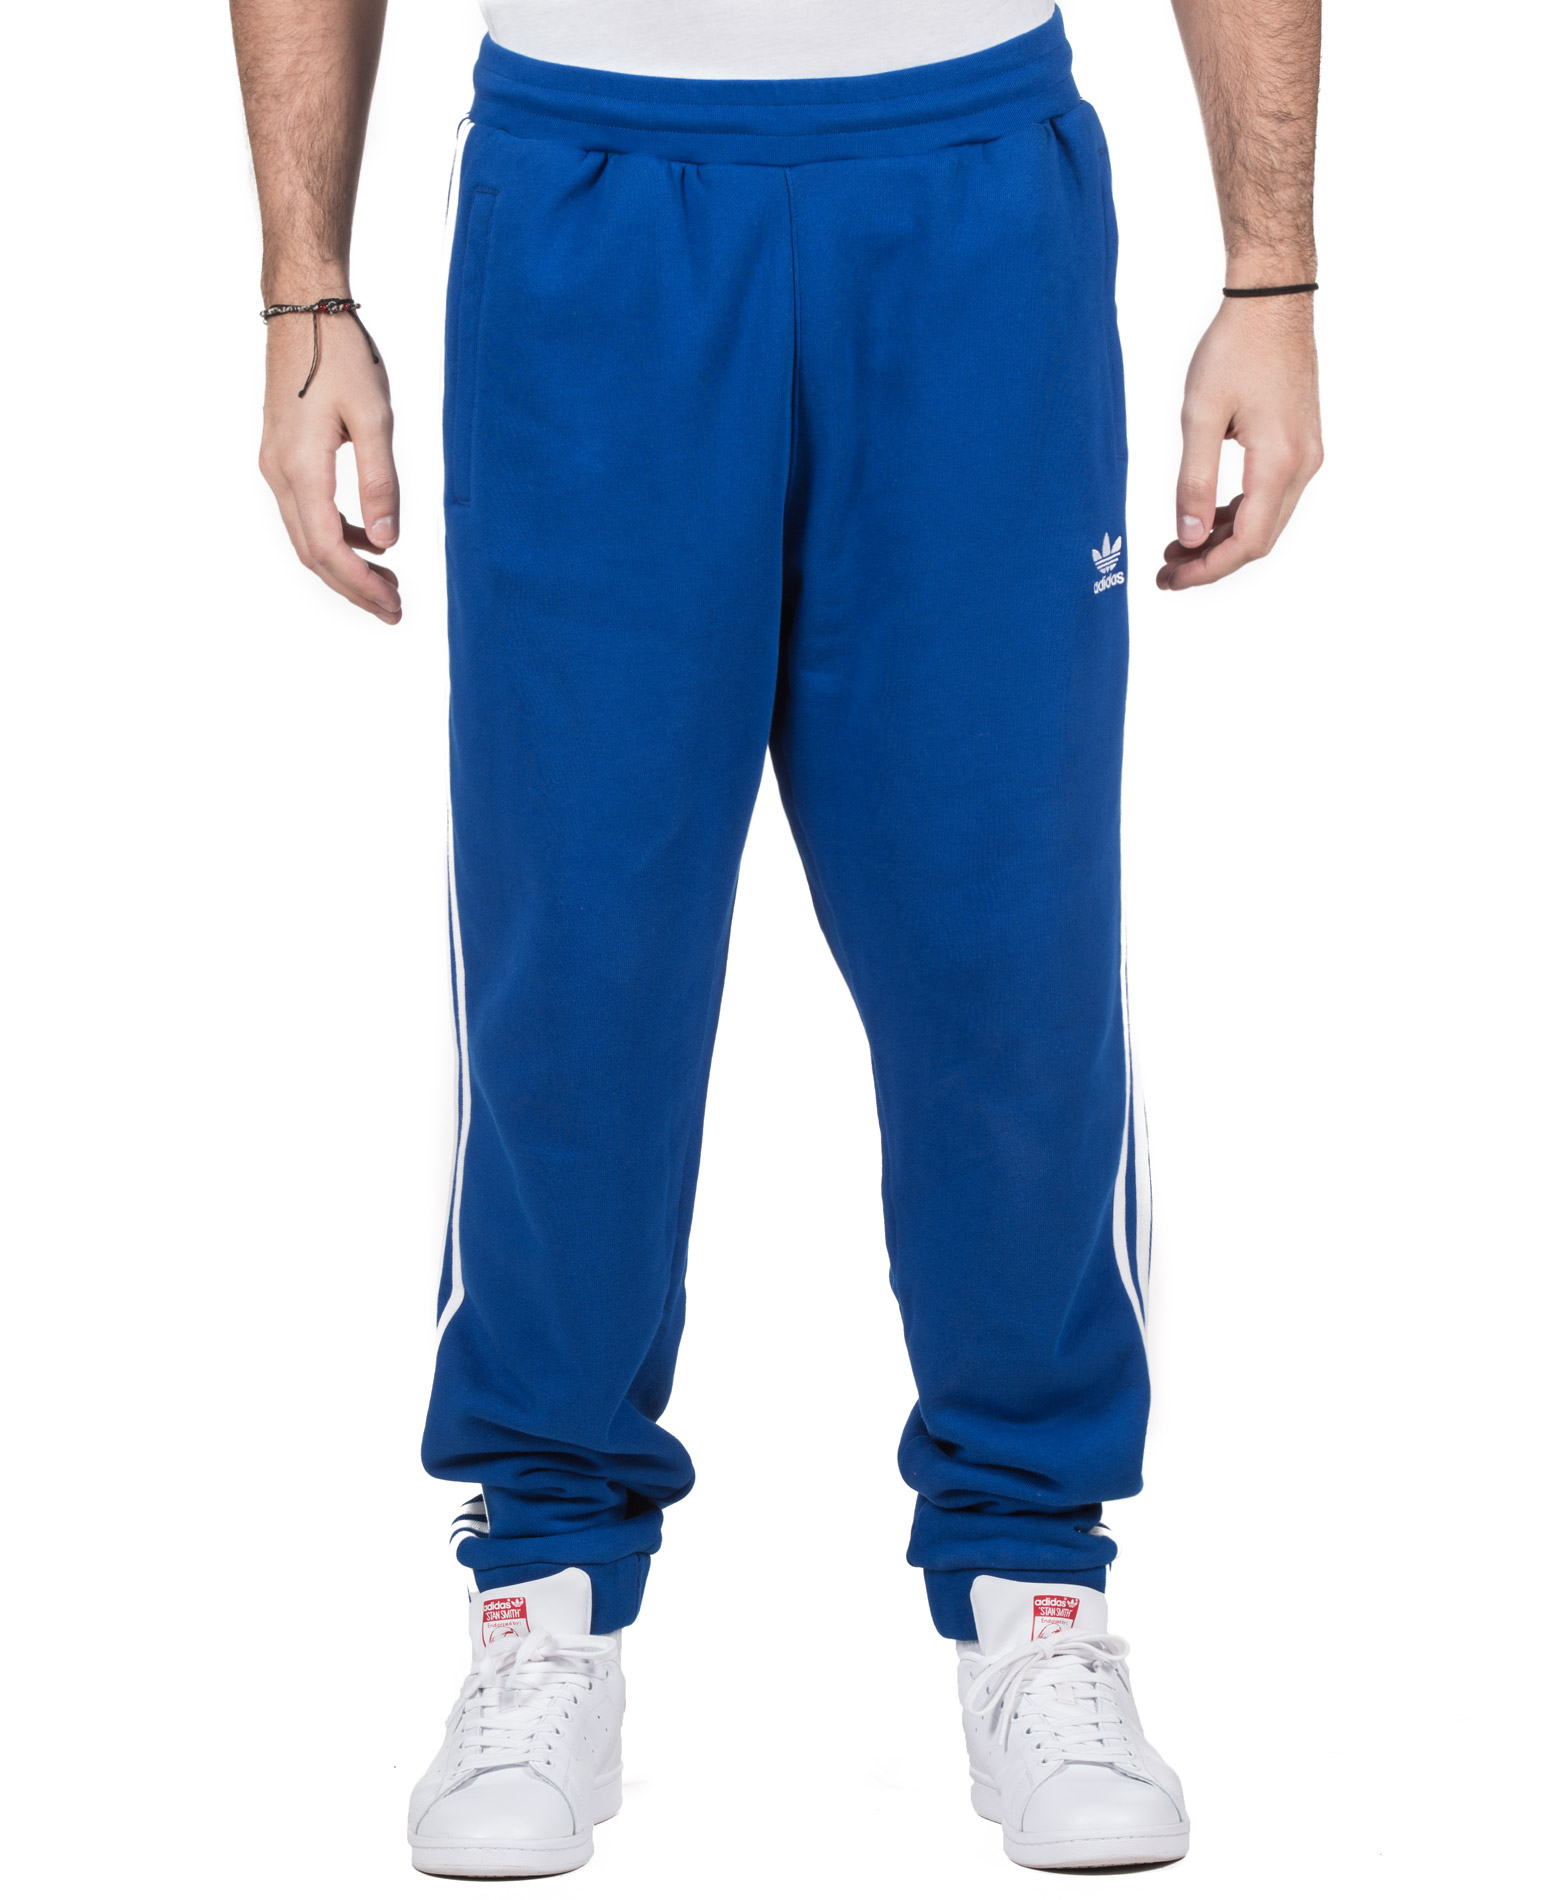 adidas Originals 3-STRIPES PANT CW2430 Ρουά